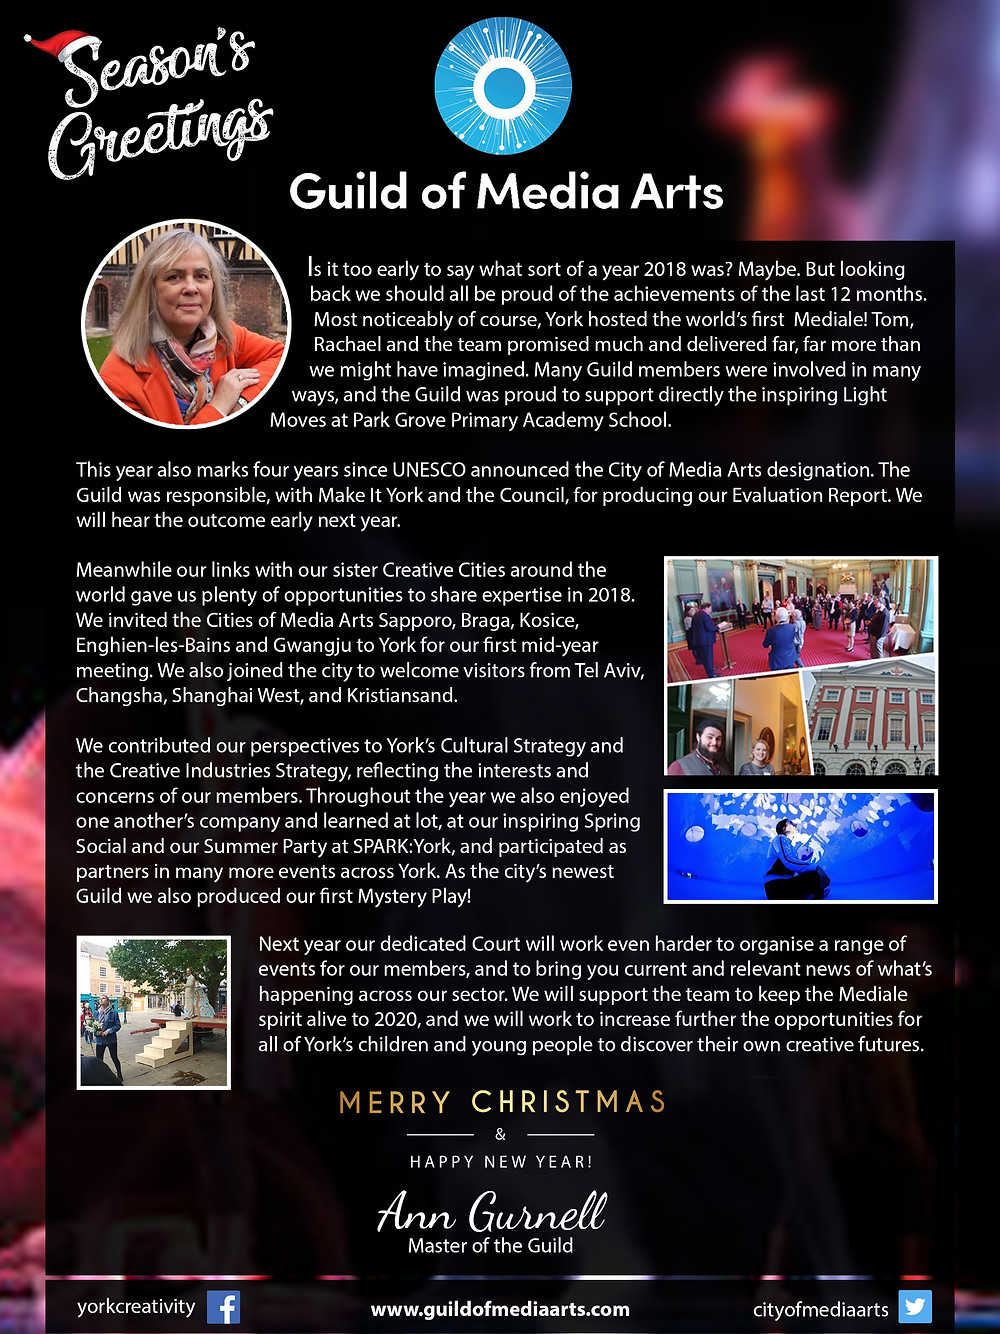 Is it too early to say what sort of a year 2018 was? Maybe. But looking back we should all be proud of the achievements of the last 12 months. Most noticeably of course, York hosted the world's first Mediale! Tom, Rachael and the team promised much and delivered far, far more than we might have imagined. Many Guild members were involved in many ways, and the Guild was proud to support directly the inspiring Light Moves at Park Grove Primary Academy School. This year also marks four years since UNESCO announced the City of Media Arts designation. The Guild was responsible, with Make It York and the Council, for producing our Evaluation Report. We will hear the outcome early next year. Meanwhile our links with our sister Creative Cities around the world gave us plenty of opportunities to share expertise in 2018. We invited the Cities of Media Arts Sapporo, Braga, Kosice, Enghien-les- Bains and Gwangju to York for our first mid-year meeting. We also joined the city to welcome visitors from Tel Aviv, Changsha, Shanghai West, and Kristiansand. We contributed our perspectives to York's Cultural Strategy and the Creative Industries Strategy, reflecting the interests and concerns of our members. Throughout the year we also enjoyed one another's company and learned at lot, at our inspiring Spring Social and our Summer Party at SPARK:York, and participated as partners in many more events across York. As the city's newest Guild we also produced our first Mystery Play! Next year our dedicated Court will work even harder to organise a range of events for our members, and to bring you current and relevant news of what's happening across our sector. We will support the team to keep the Mediale spirit alive to 2020, and we will work to increase further the opportunities for all of York's children and young people to discover their own creative futures. Merry Christmas and Happy New Year! Ann Gurnell Master